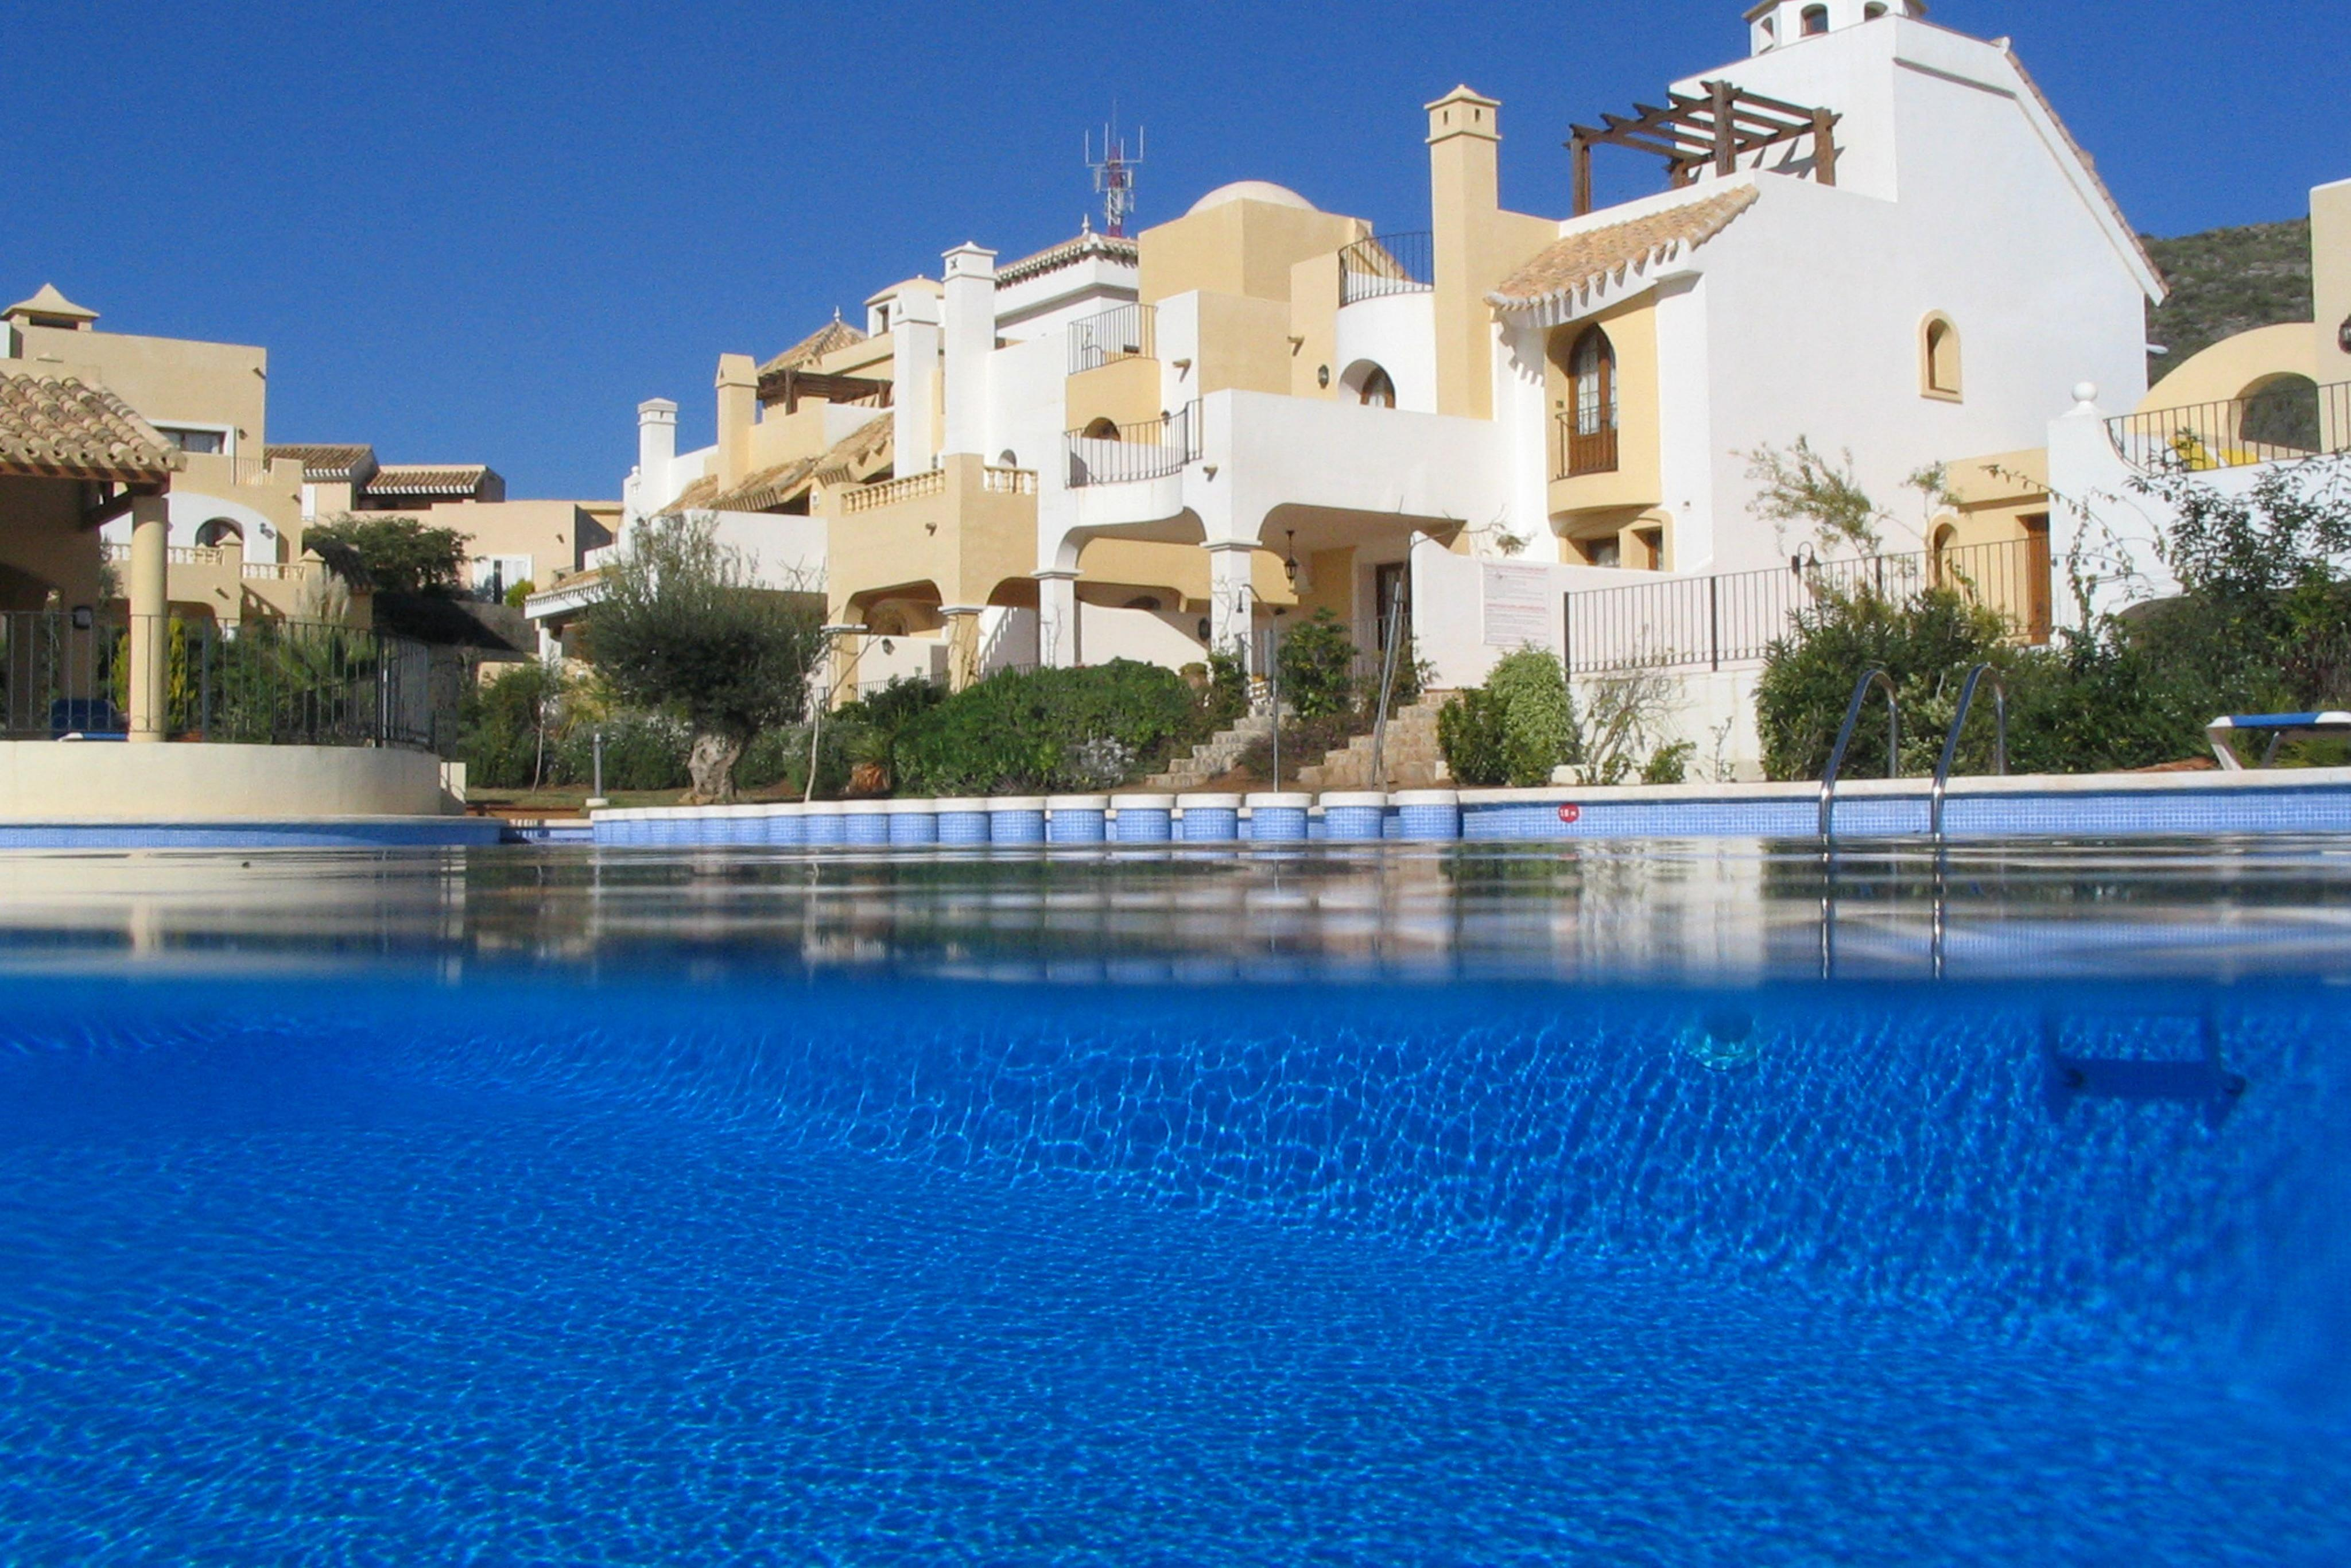 La Manga Club Resort - Monte Claro 445 2 Bedrooms, for rent